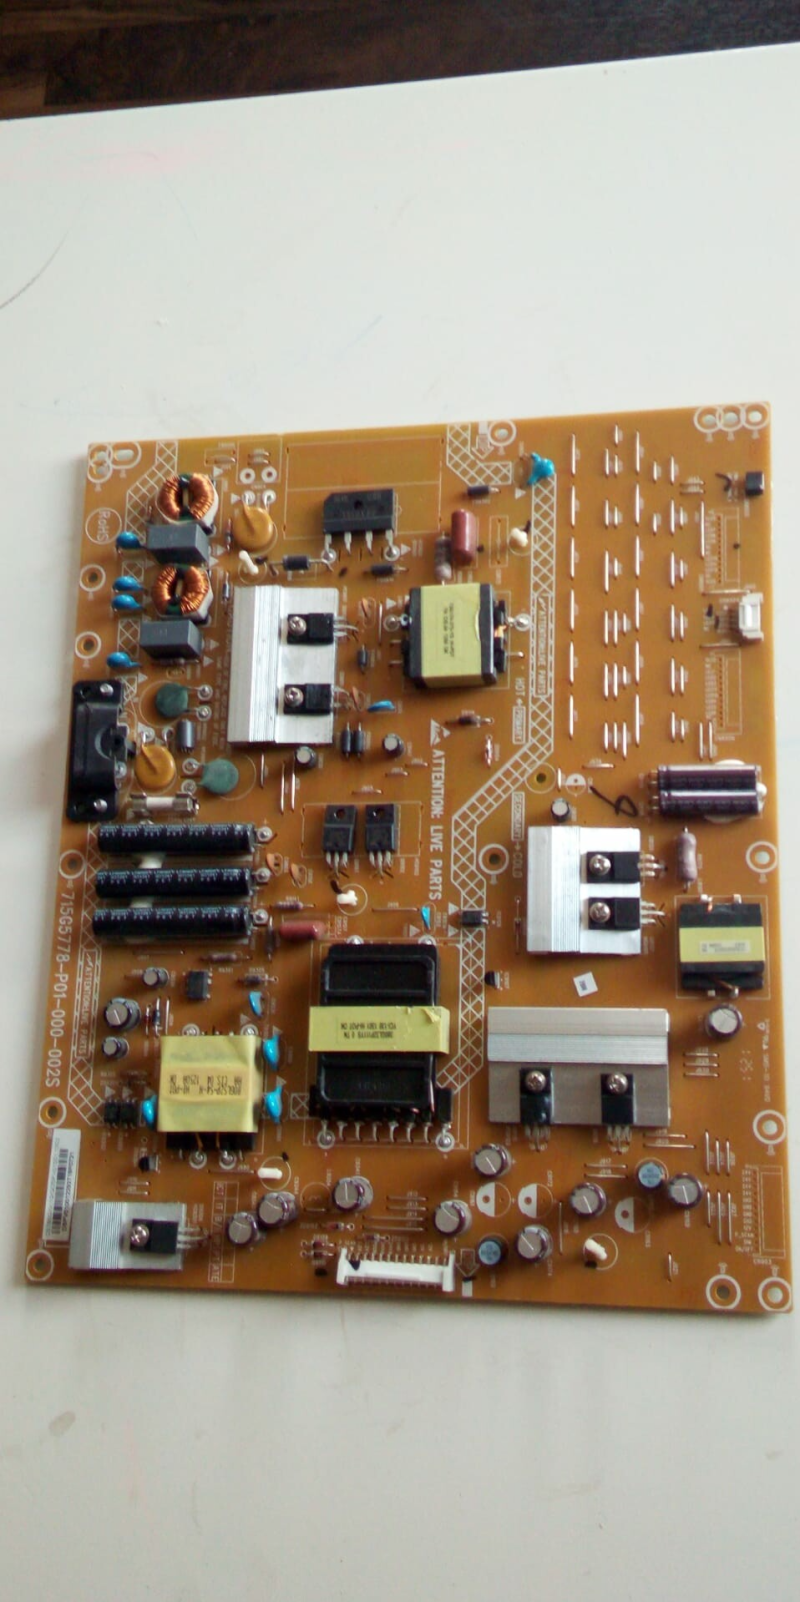 Powerboard Philips 47PFL5008K12 715G778-P01-000-002S